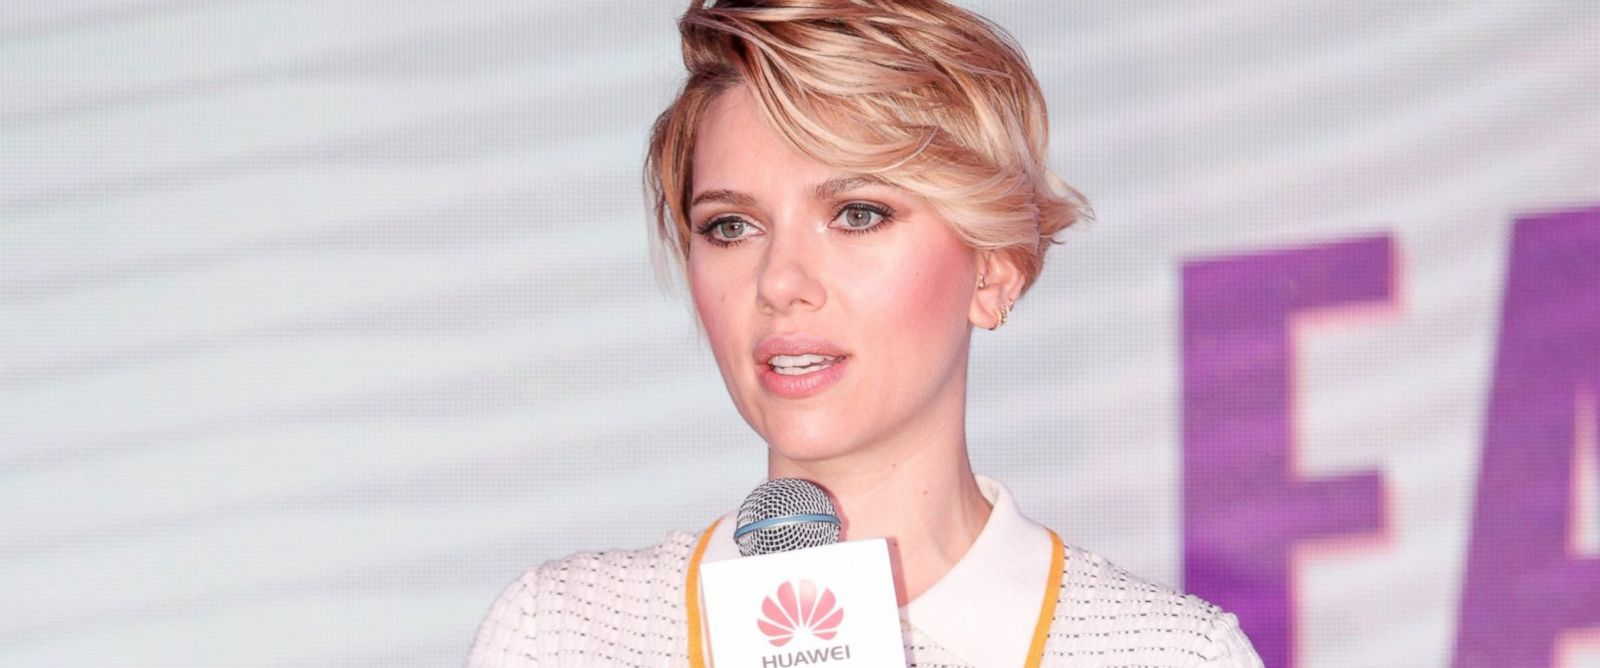 scarlett johansson speaks out about hollywood wage gap